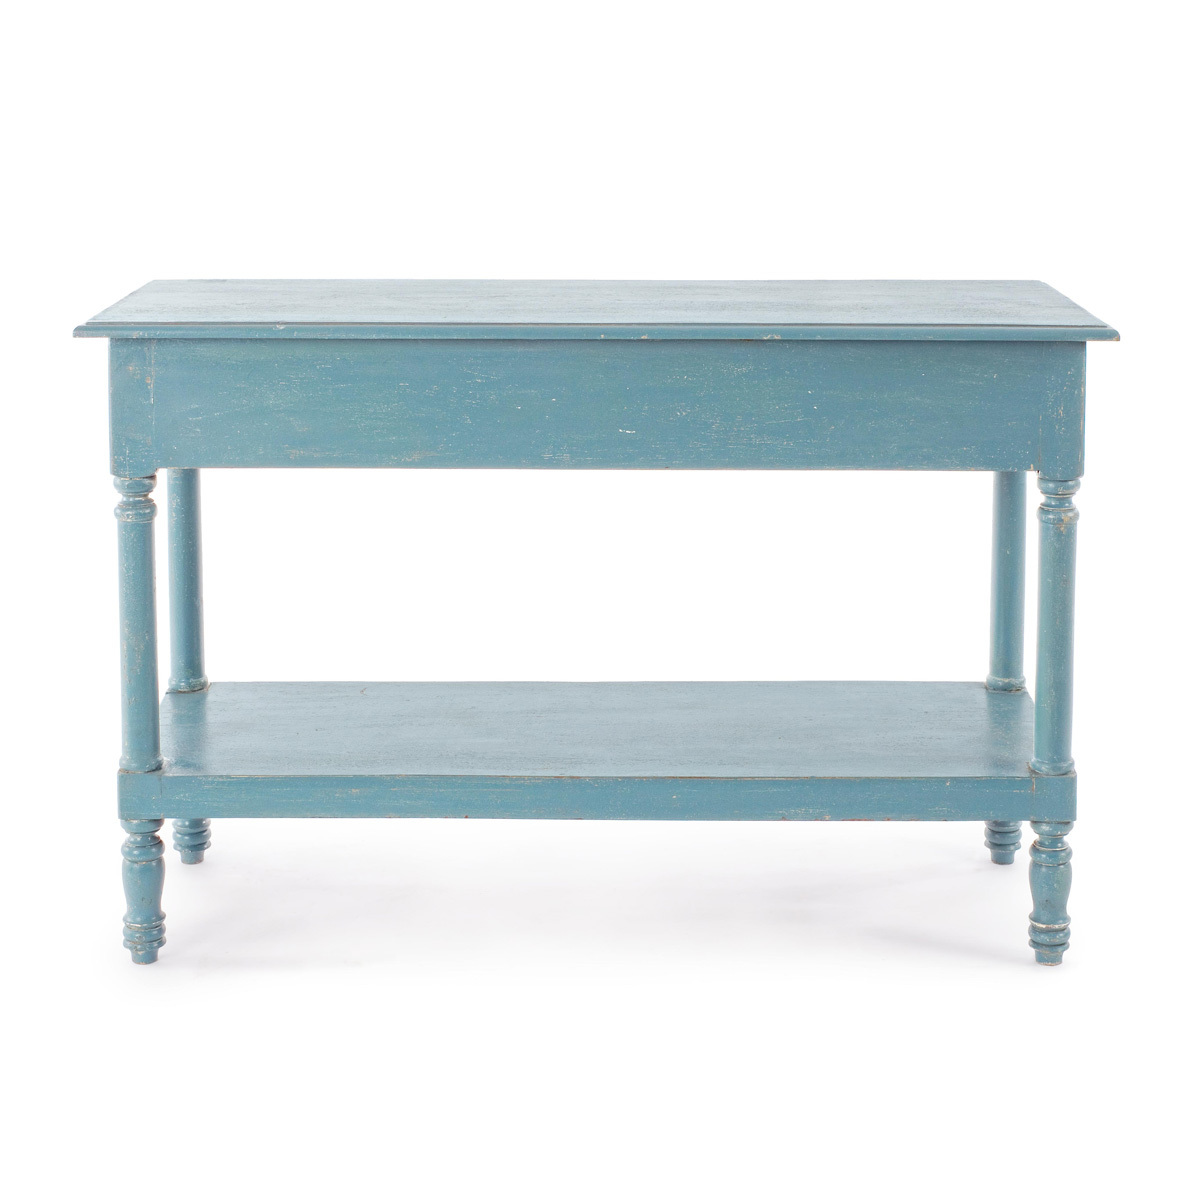 Photos 2: Bizzotto Fixed wood console l.120 x 45 - blue avio with 3 drawers 0745675